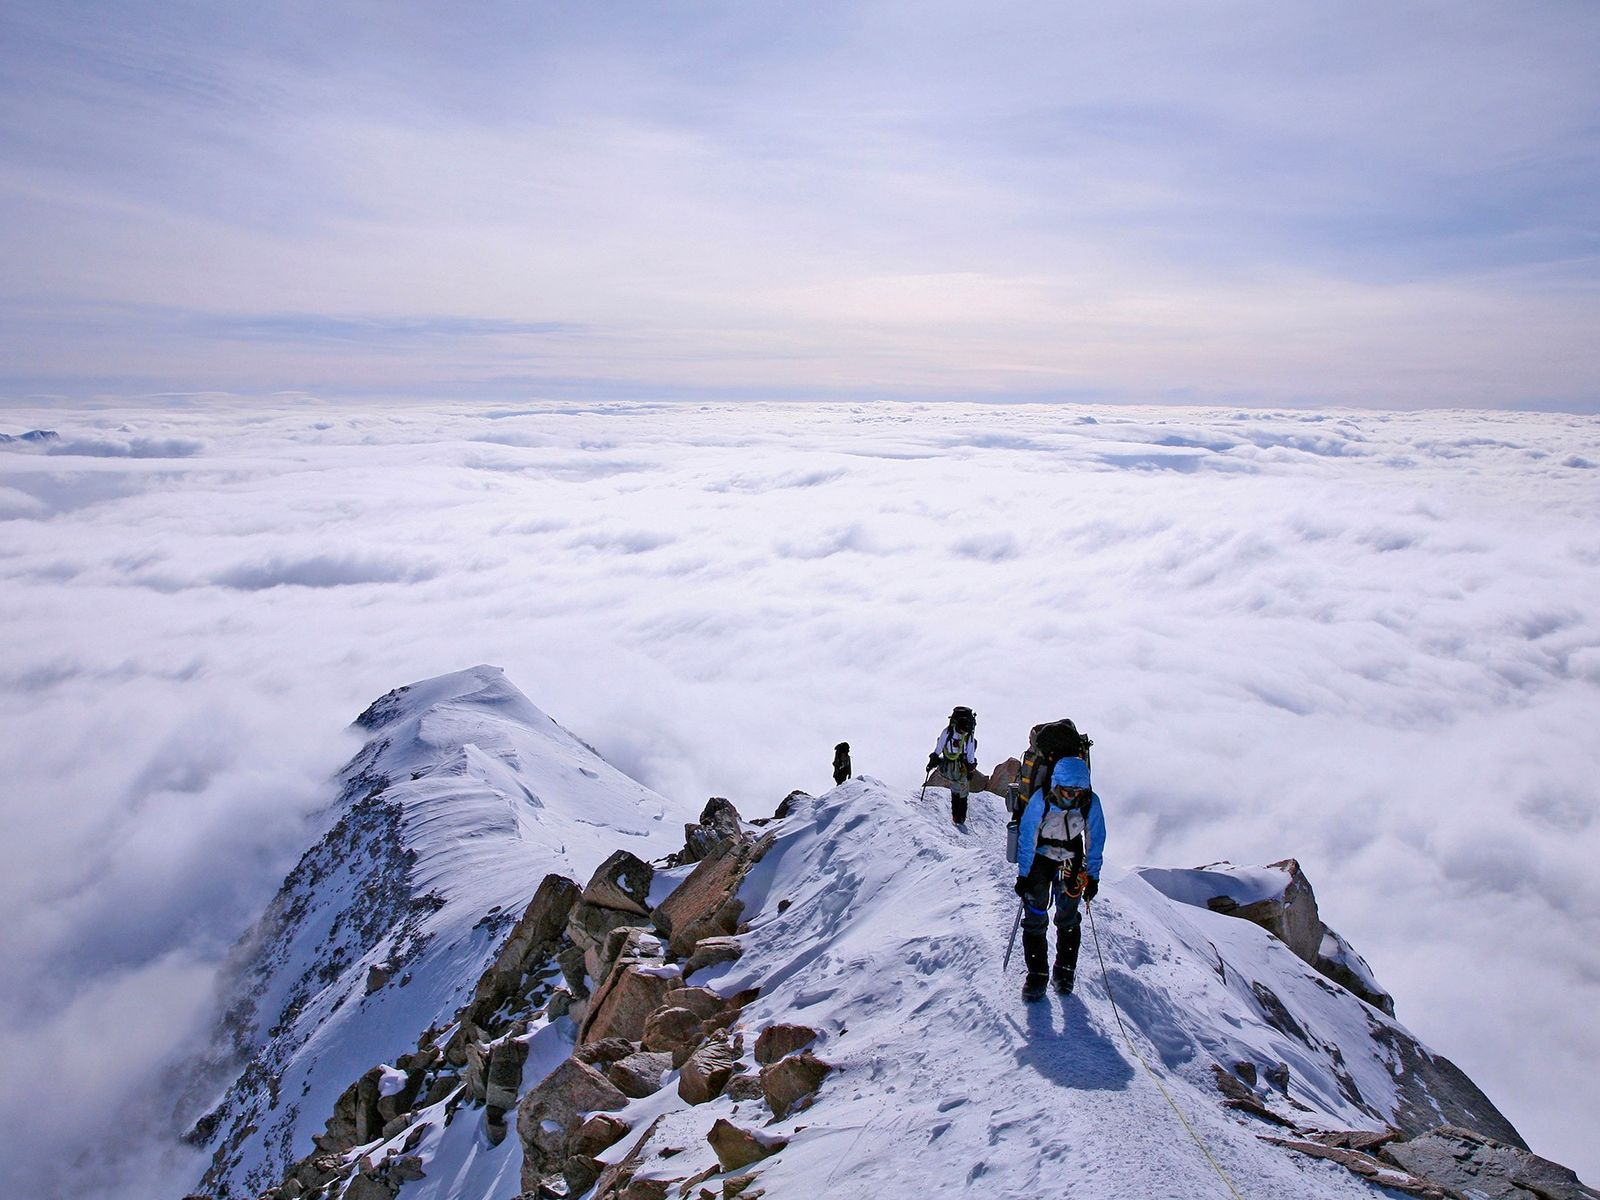 Mountaineers ascend Alaska's Denali, the highest mountain in North America.